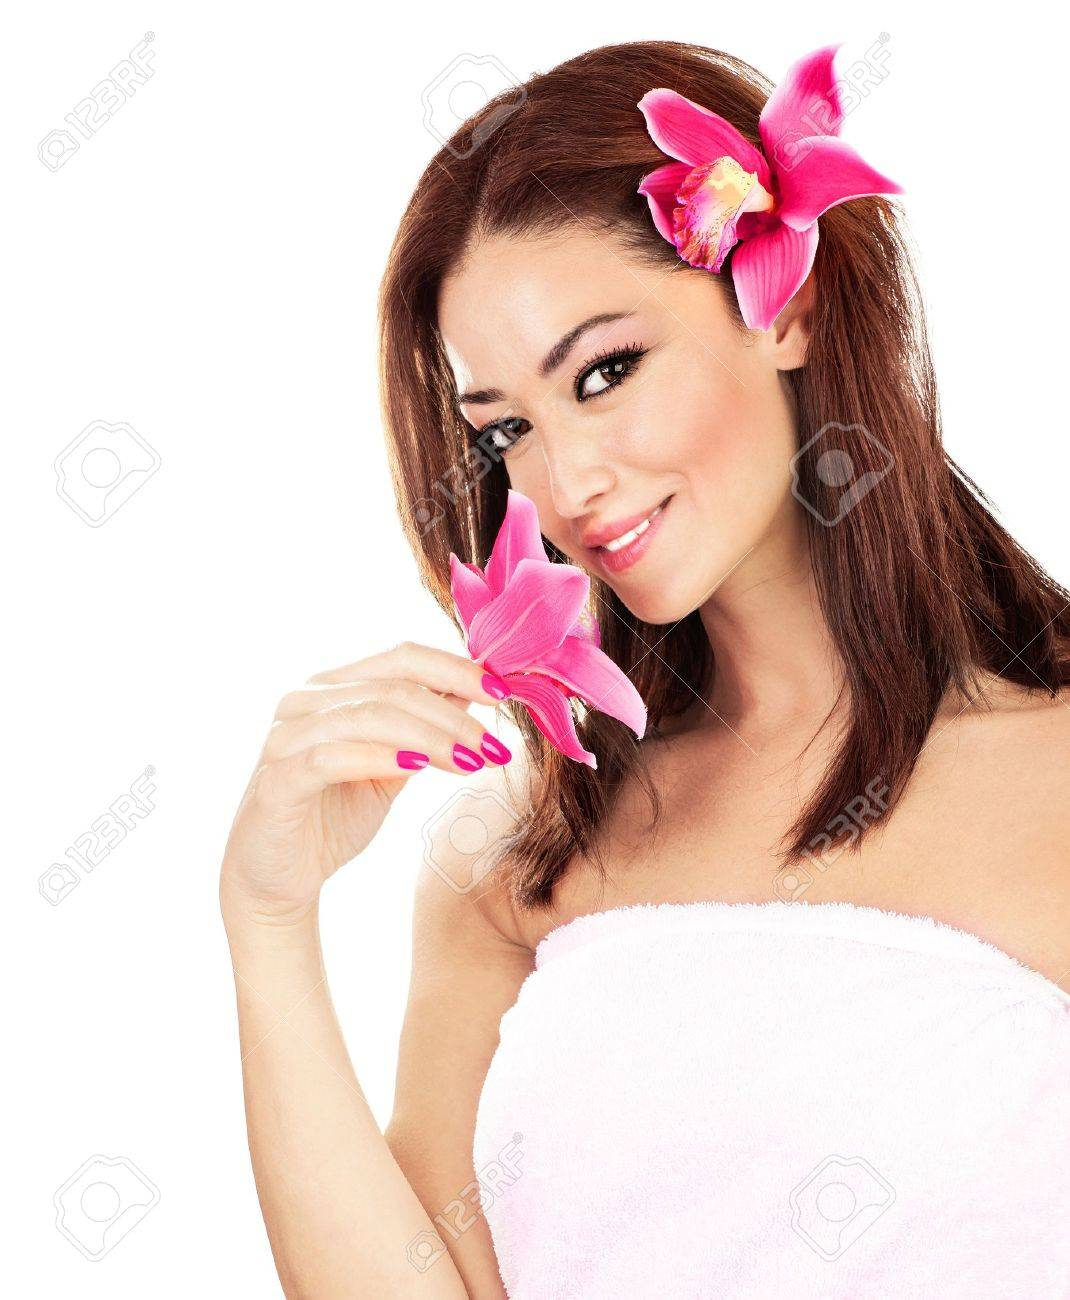 Pretty girl with pink flowers, isolated on white background, spa & relaxation concept Stock Photo - 10649132